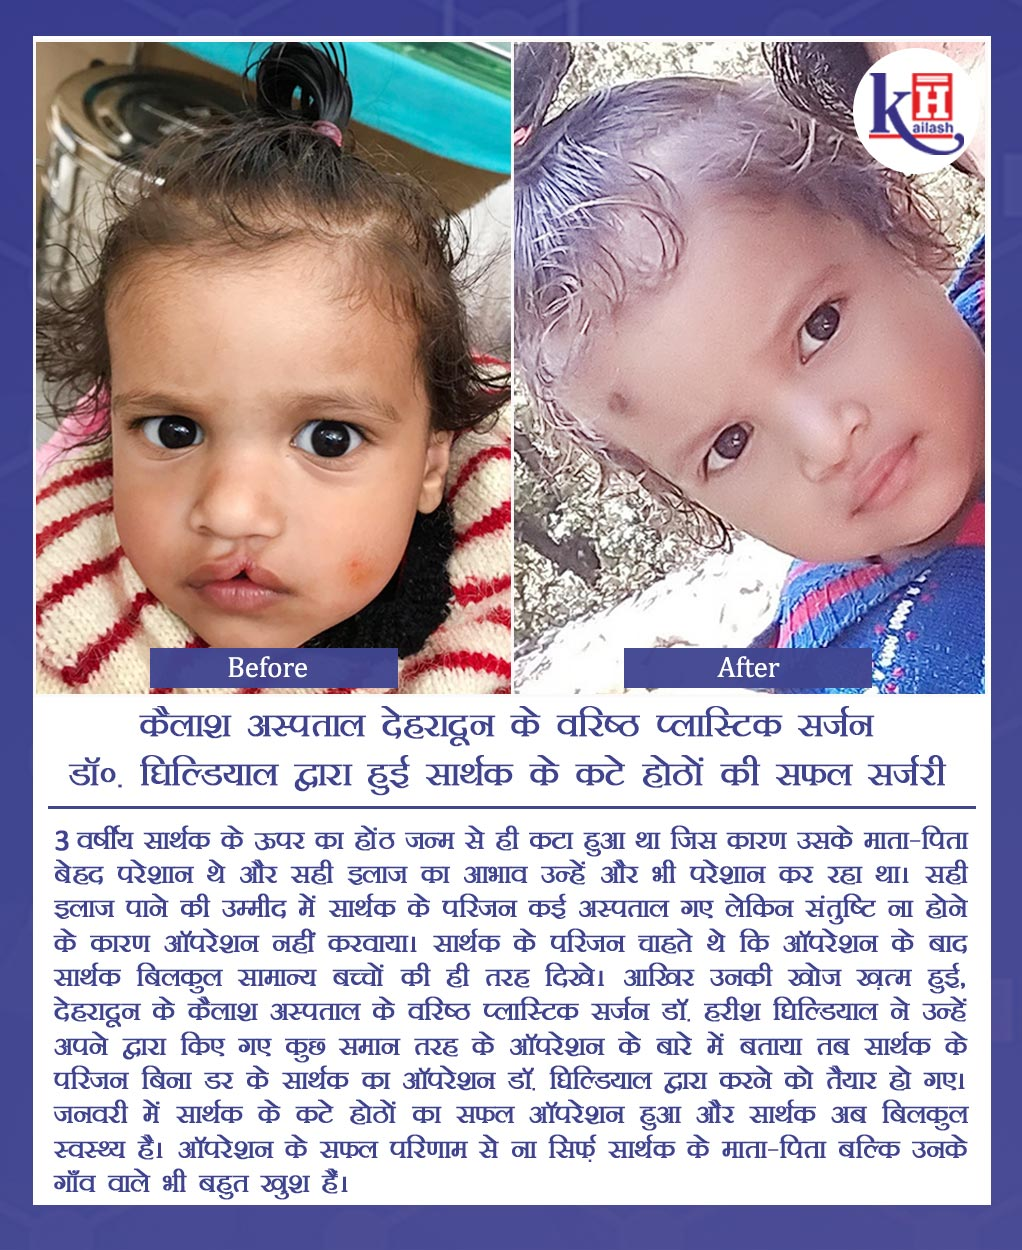 Successful Surgery of patient's Cleft Lips performed by Sr. Plastic Surgeon of Kailash Hospital Dehradun